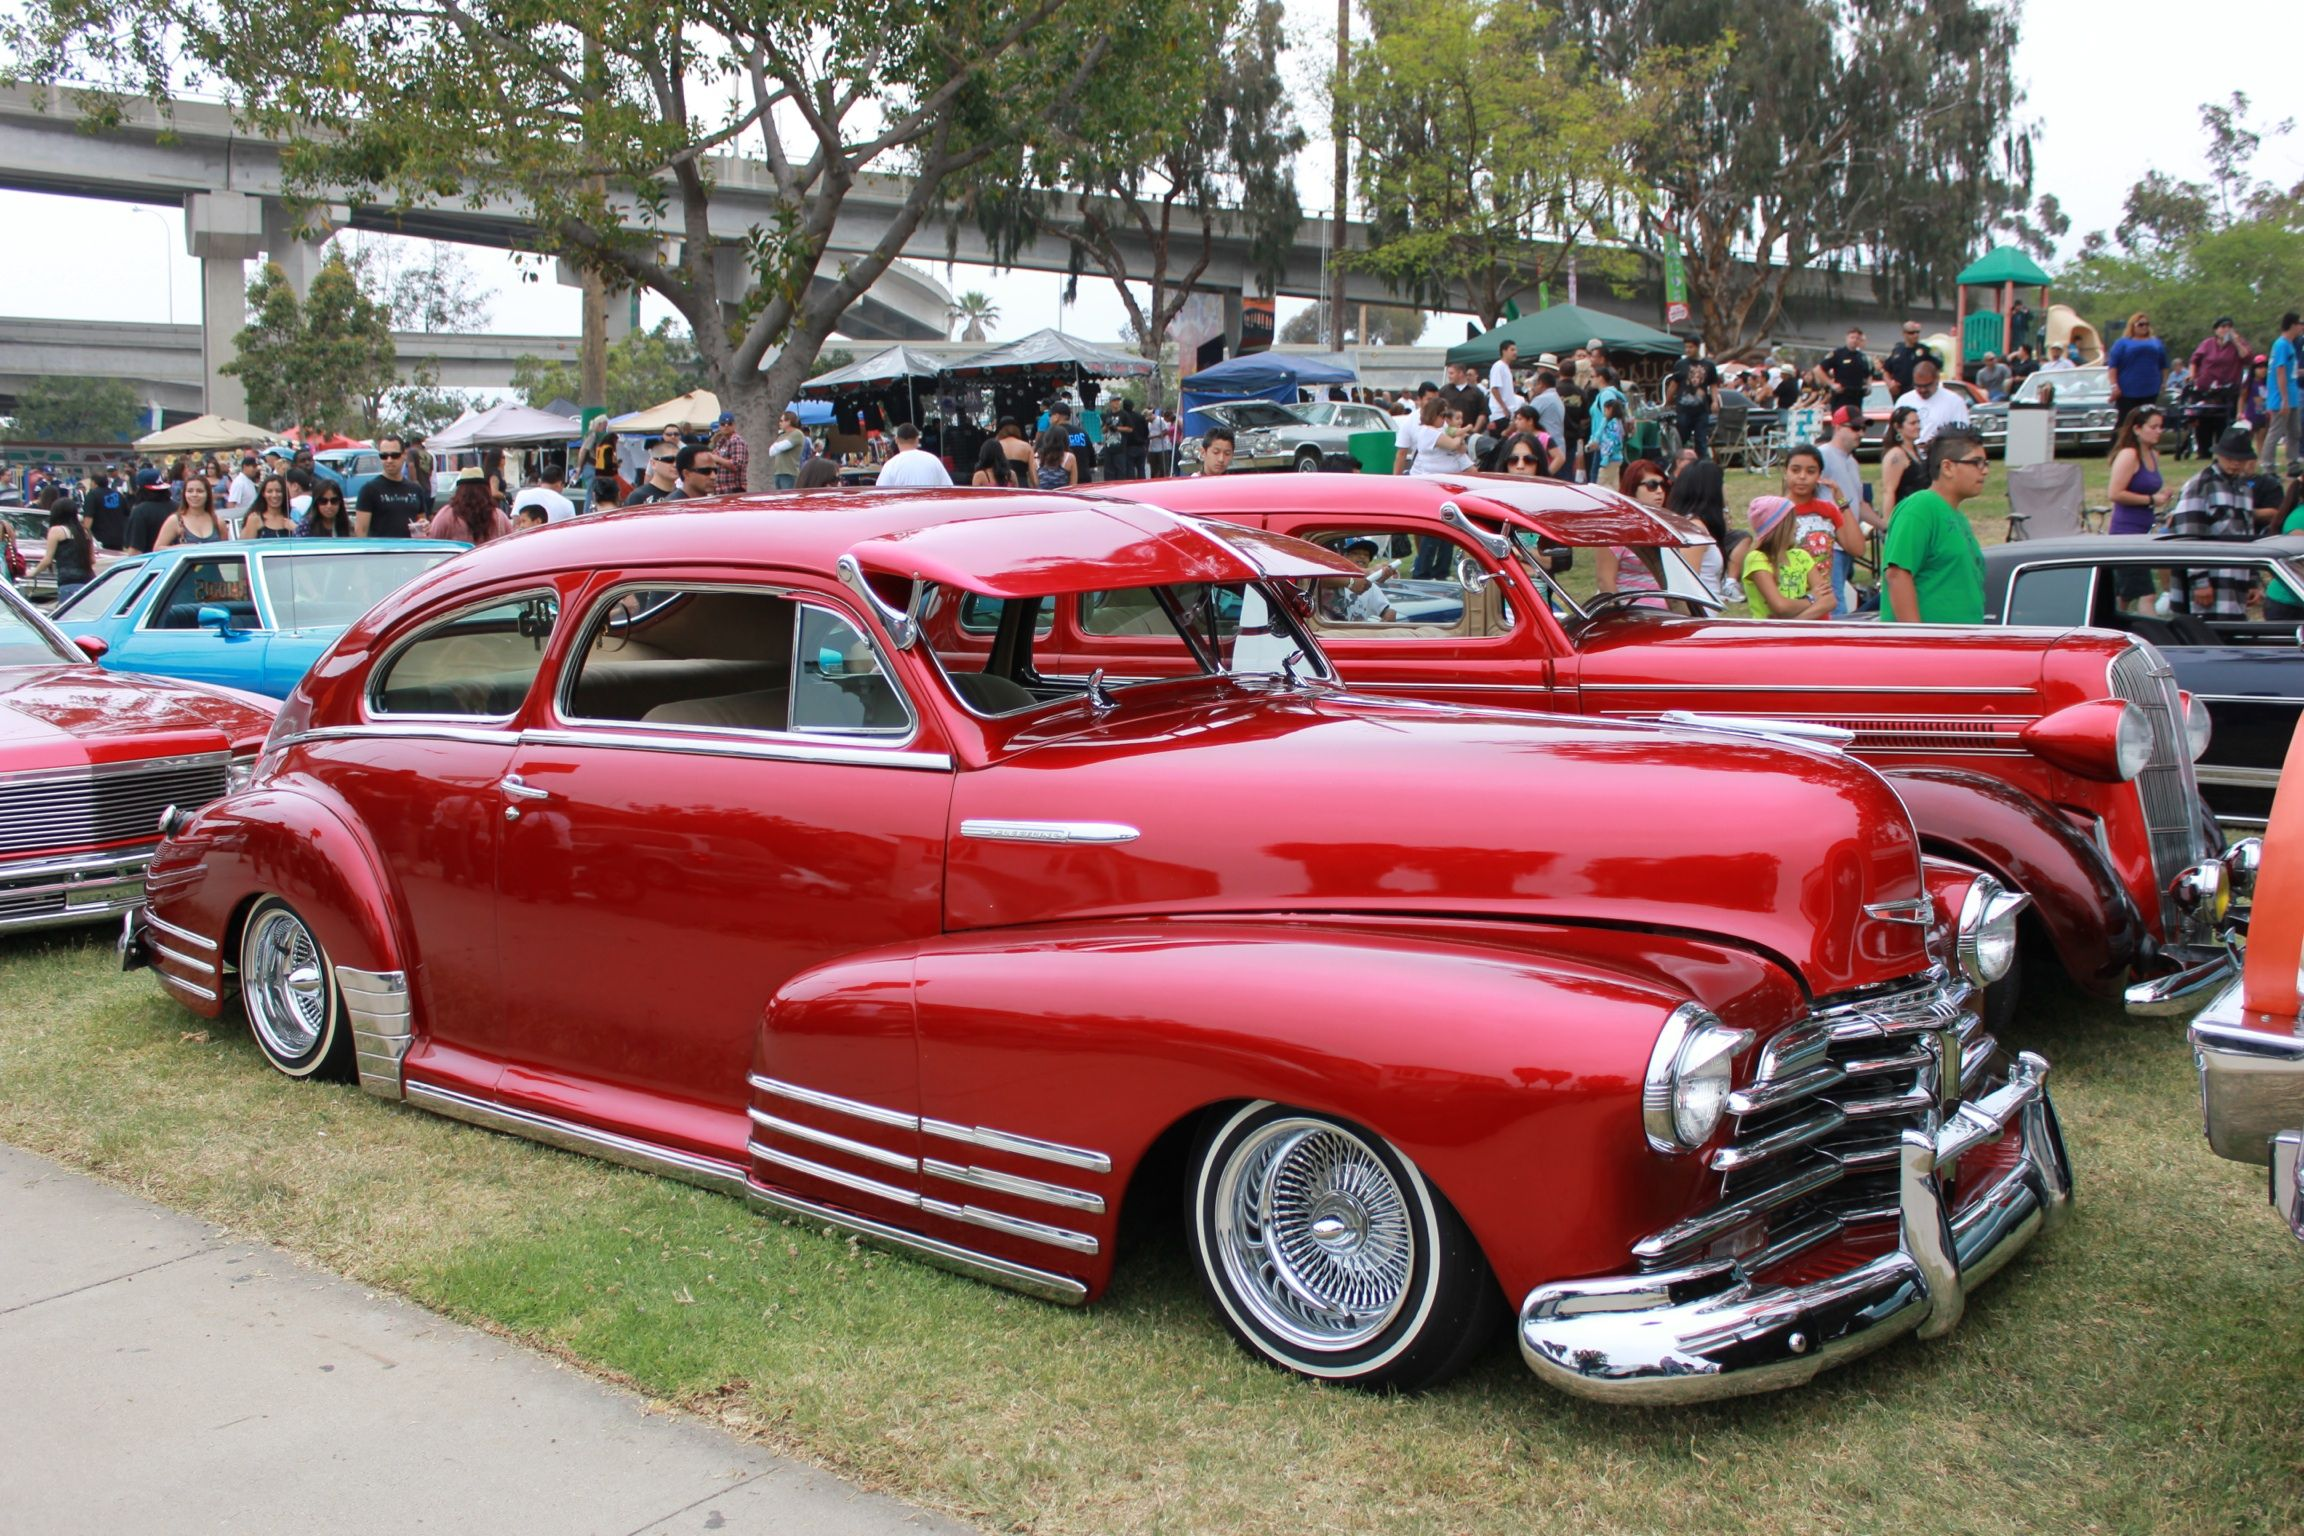 Chevy Fleetline Chicano Park Day In San Diego Ca American Classic Cars Custom Cars Dream Cars